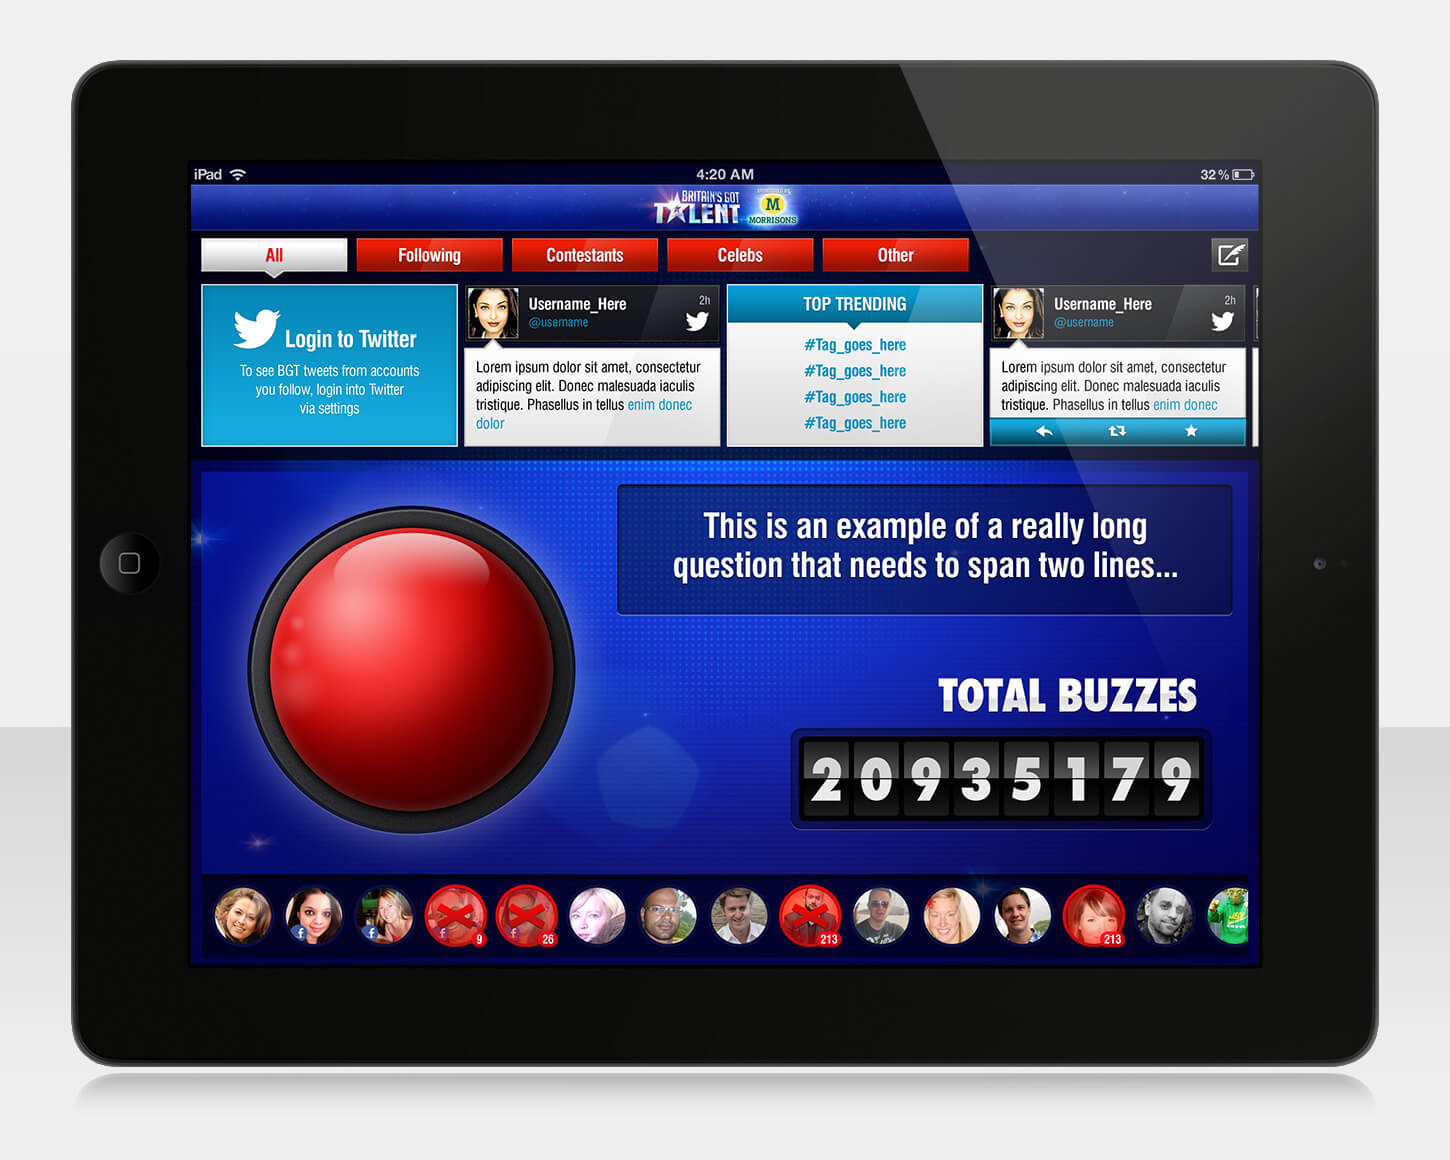 Britain's Got Talent 2013 - iPad app